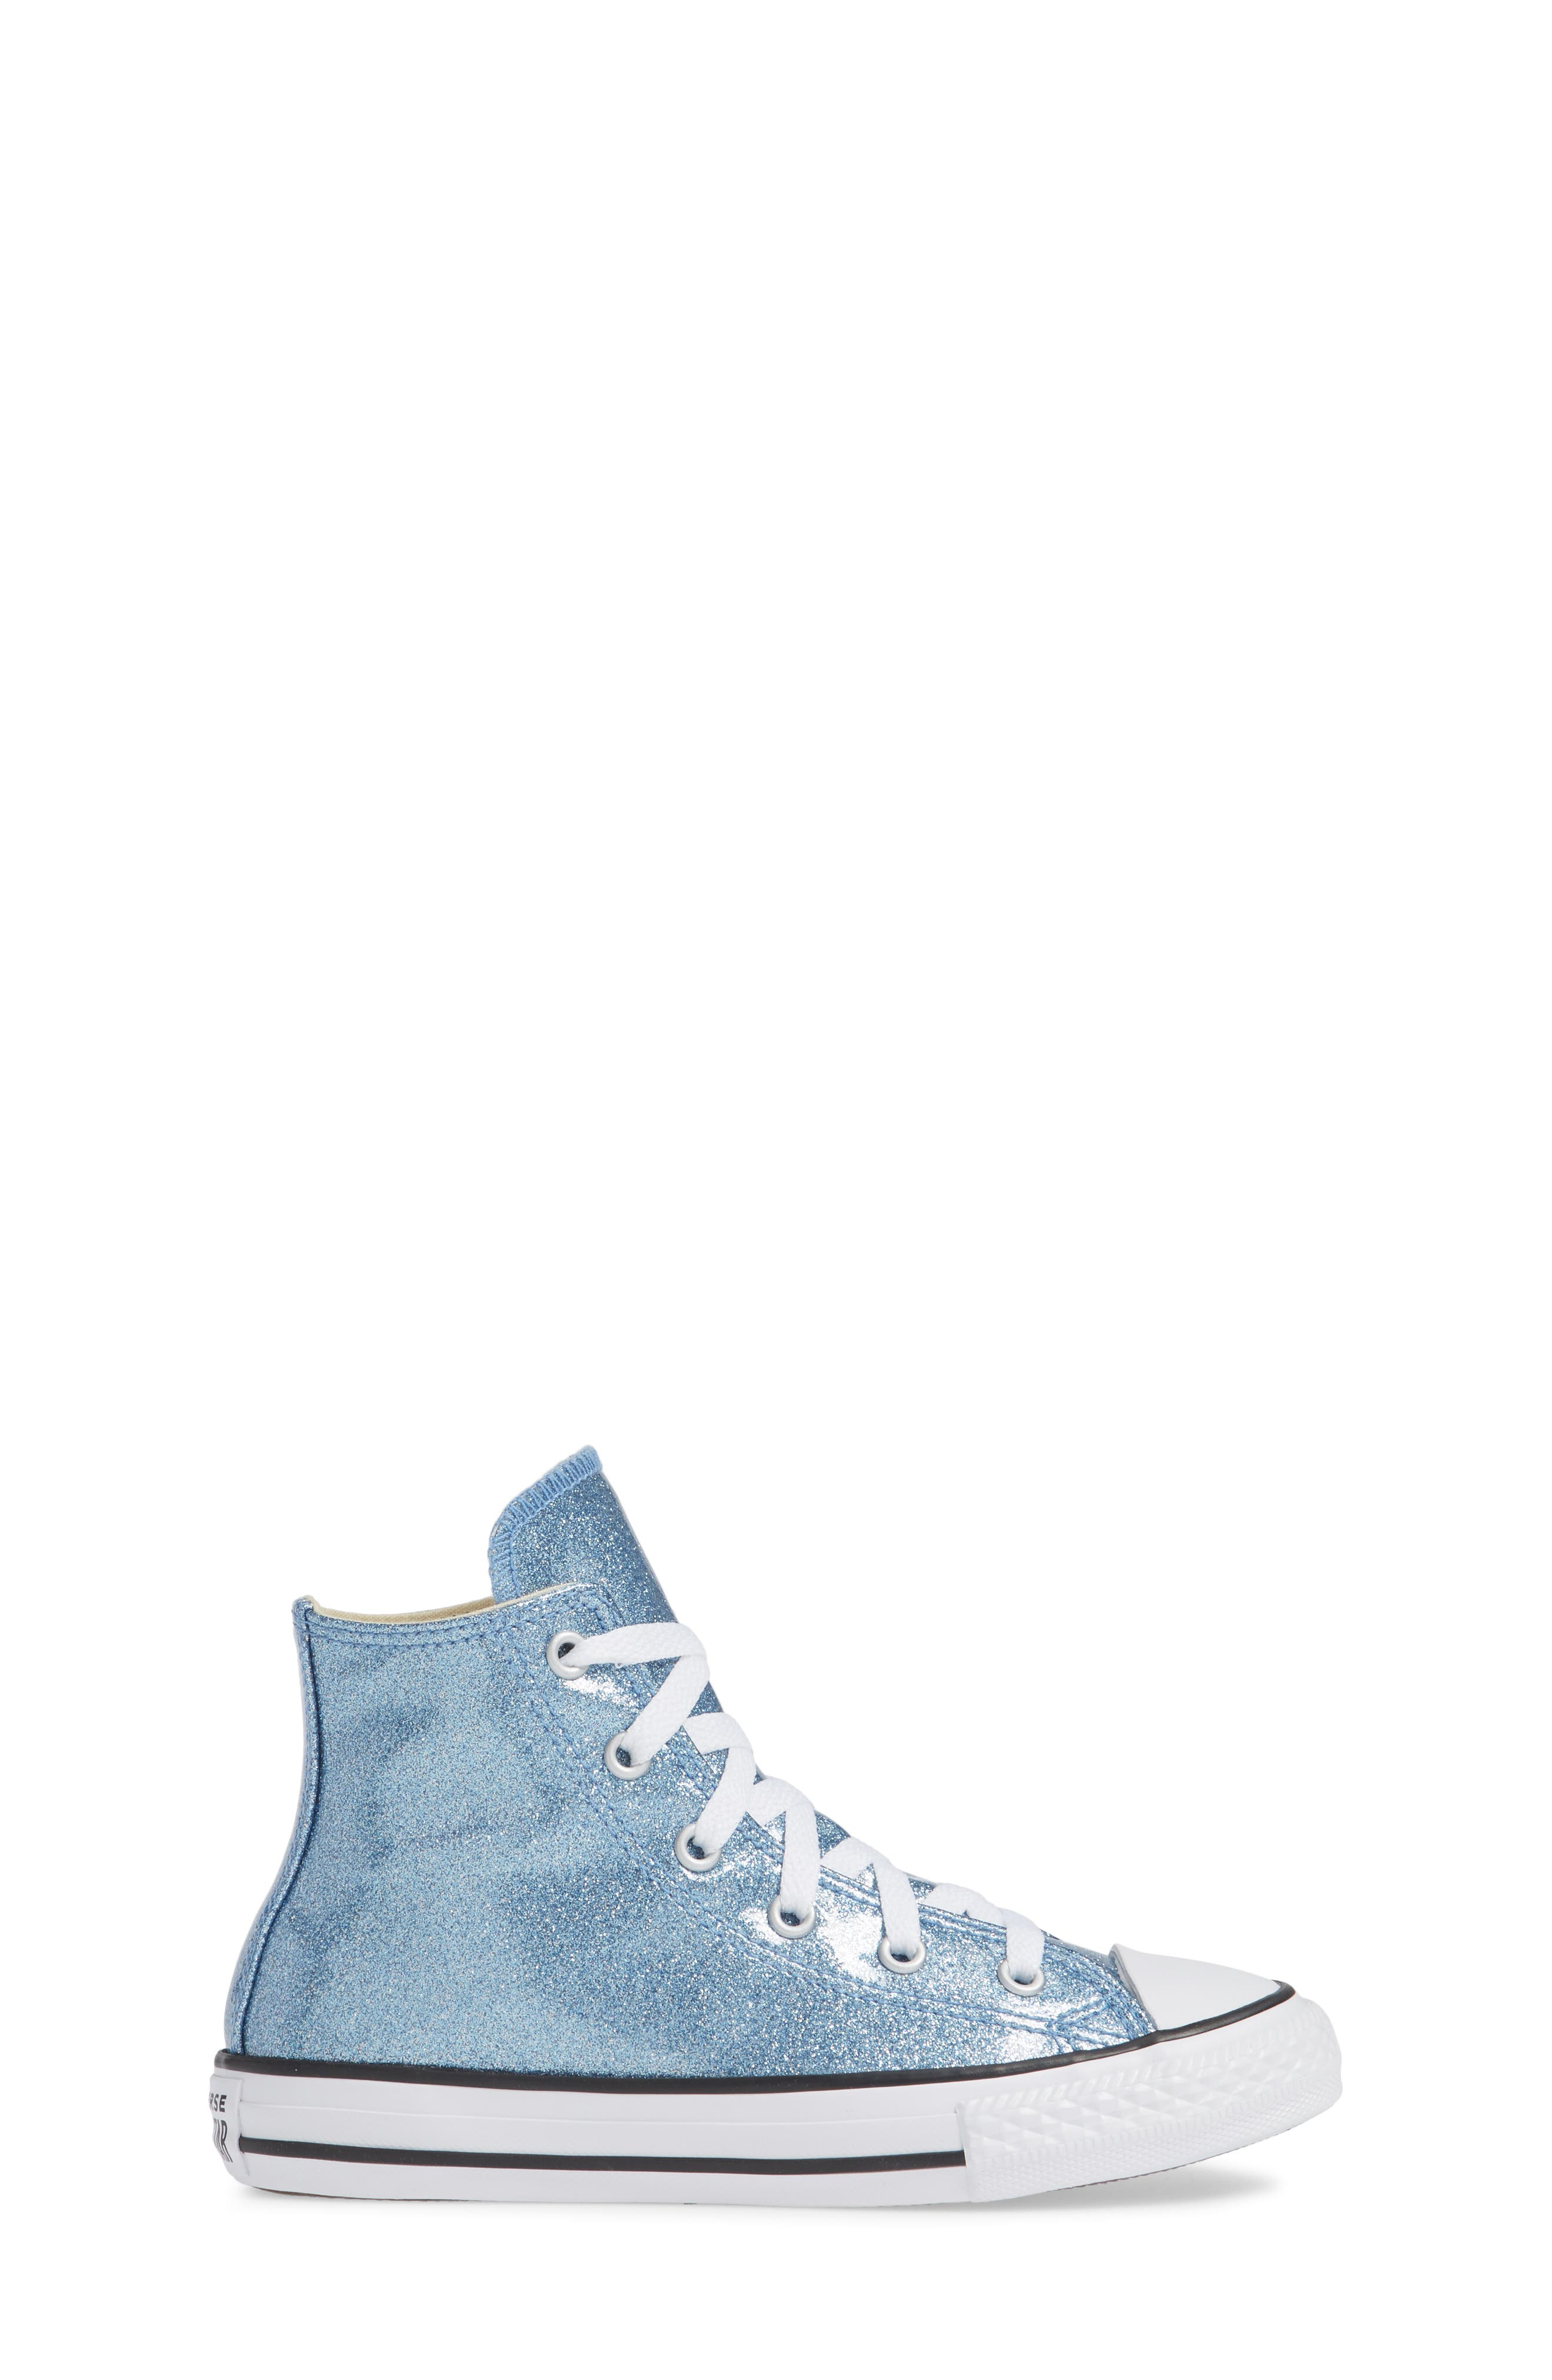 All Star<sup>®</sup> Glitter High Top Sneaker,                             Alternate thumbnail 4, color,                             Light Blue